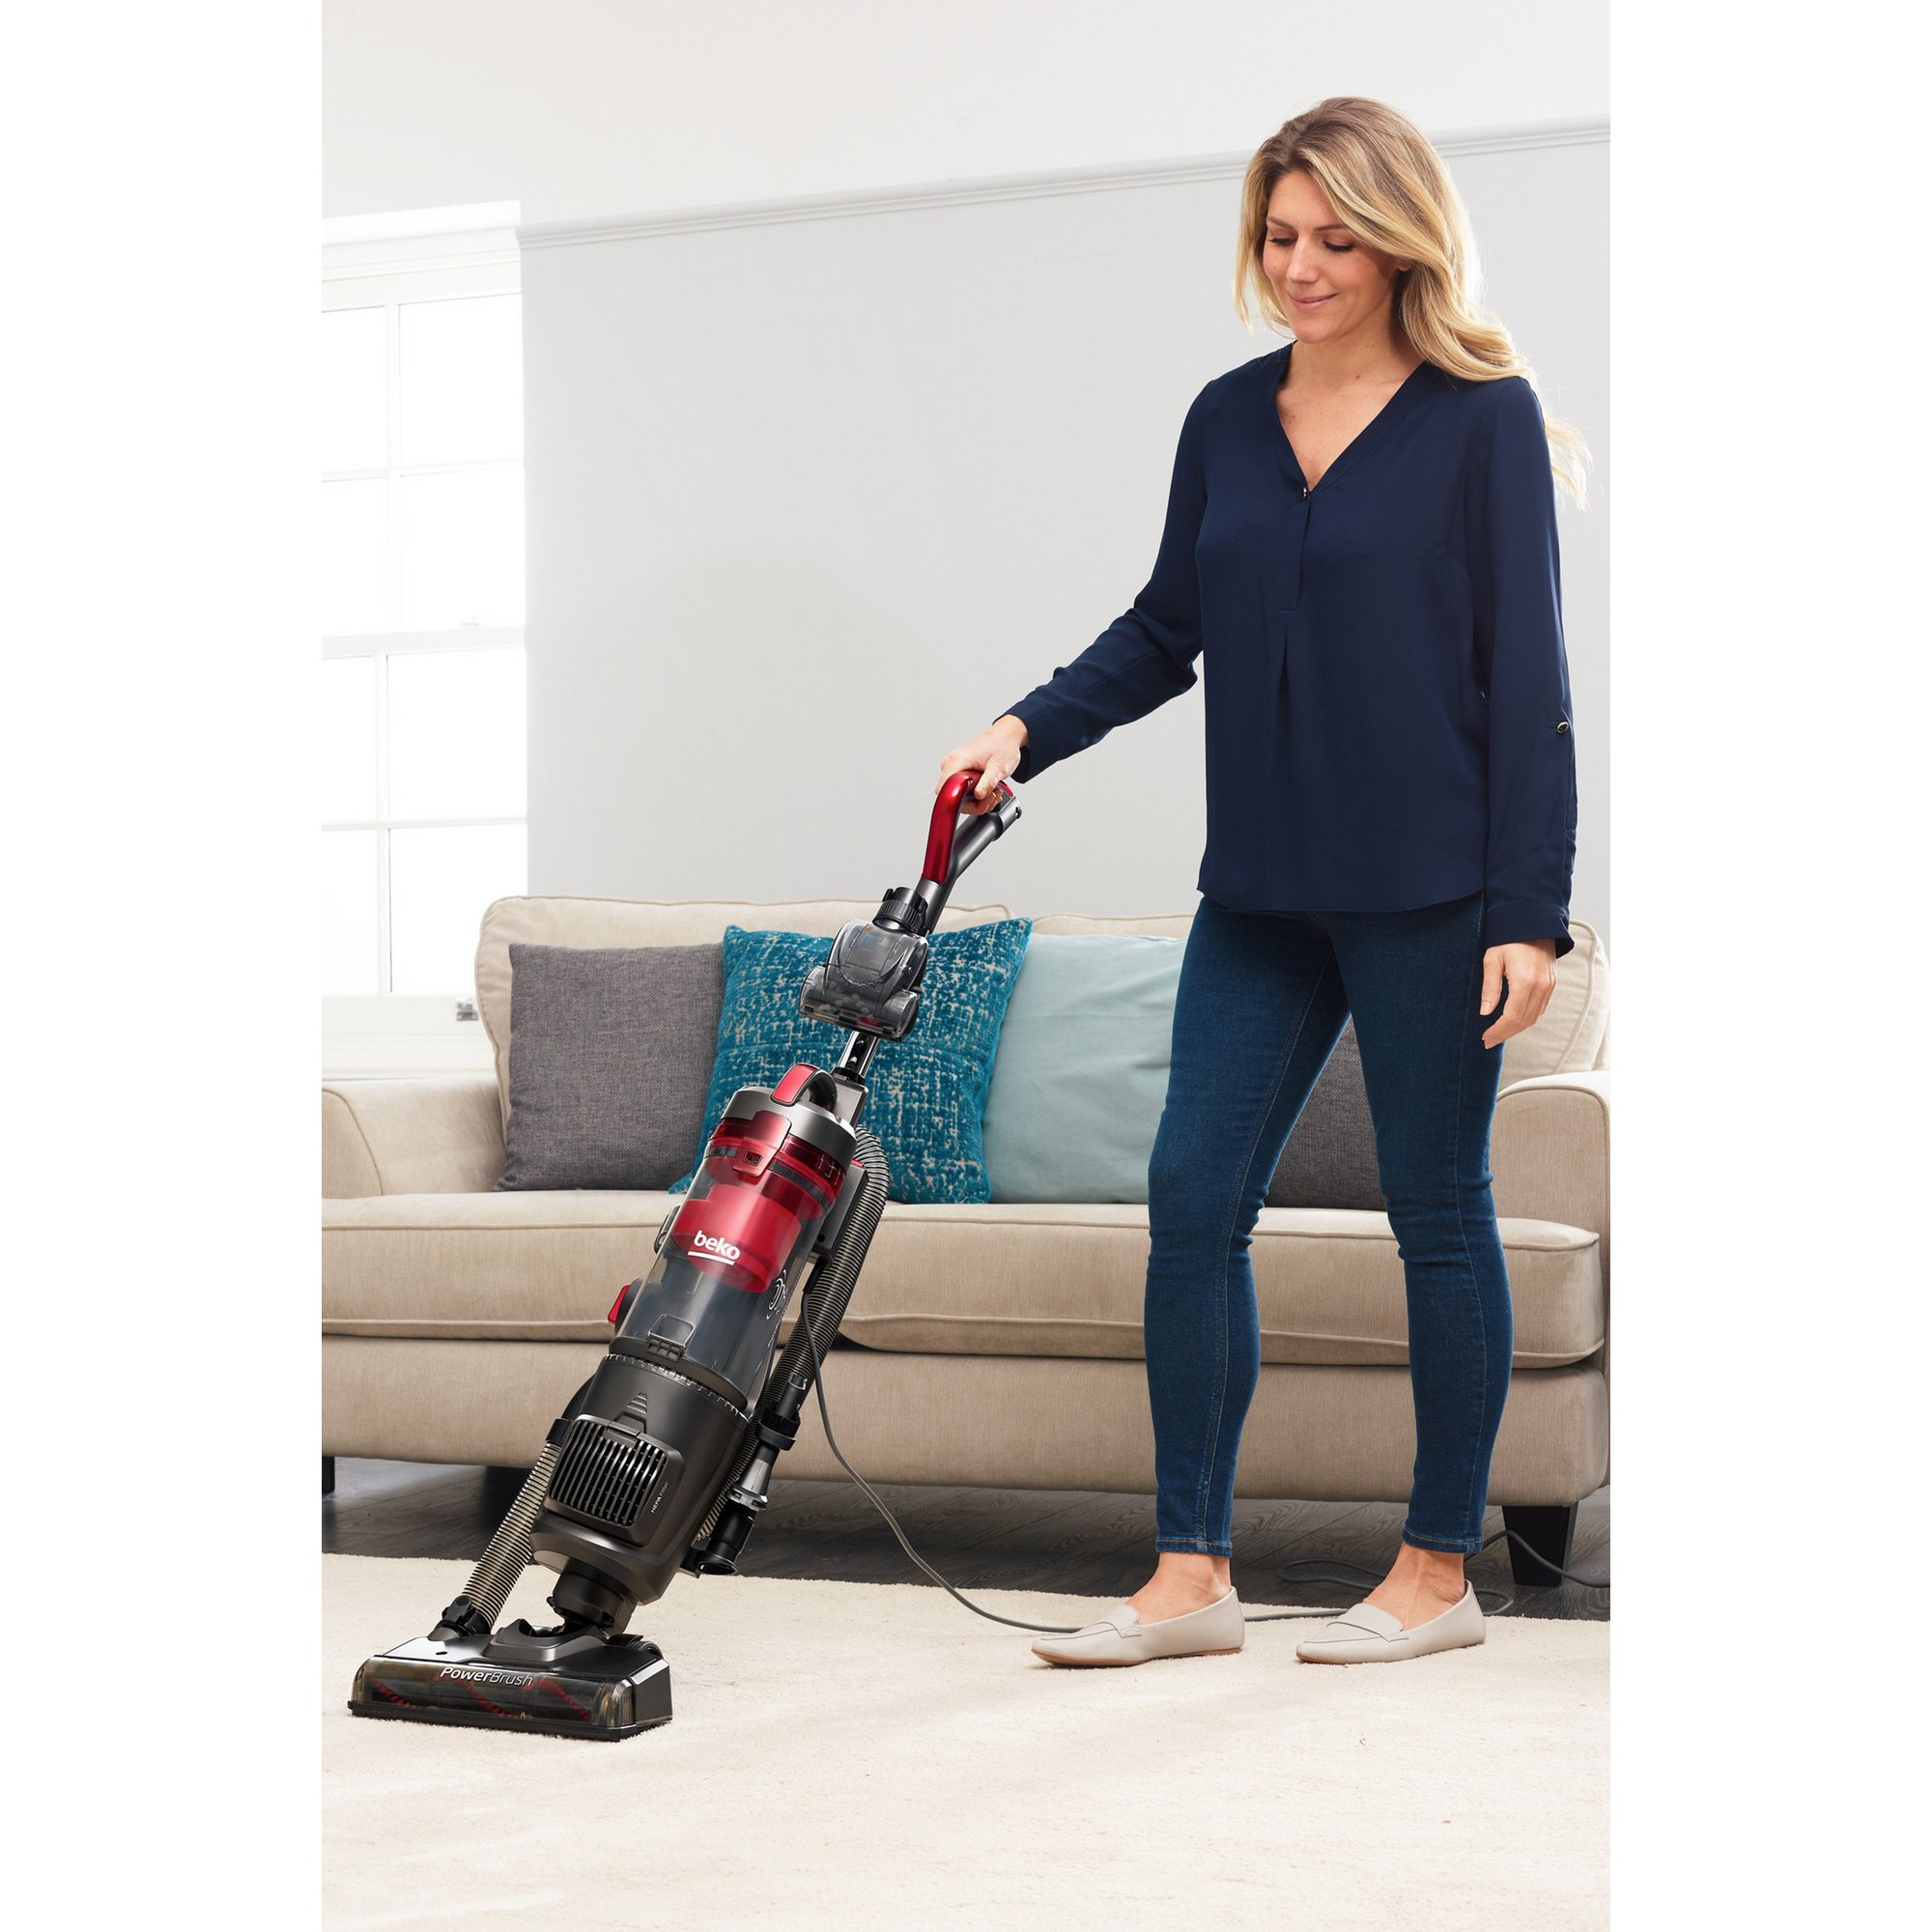 Image of Beko Upright Vacuum Cleaner